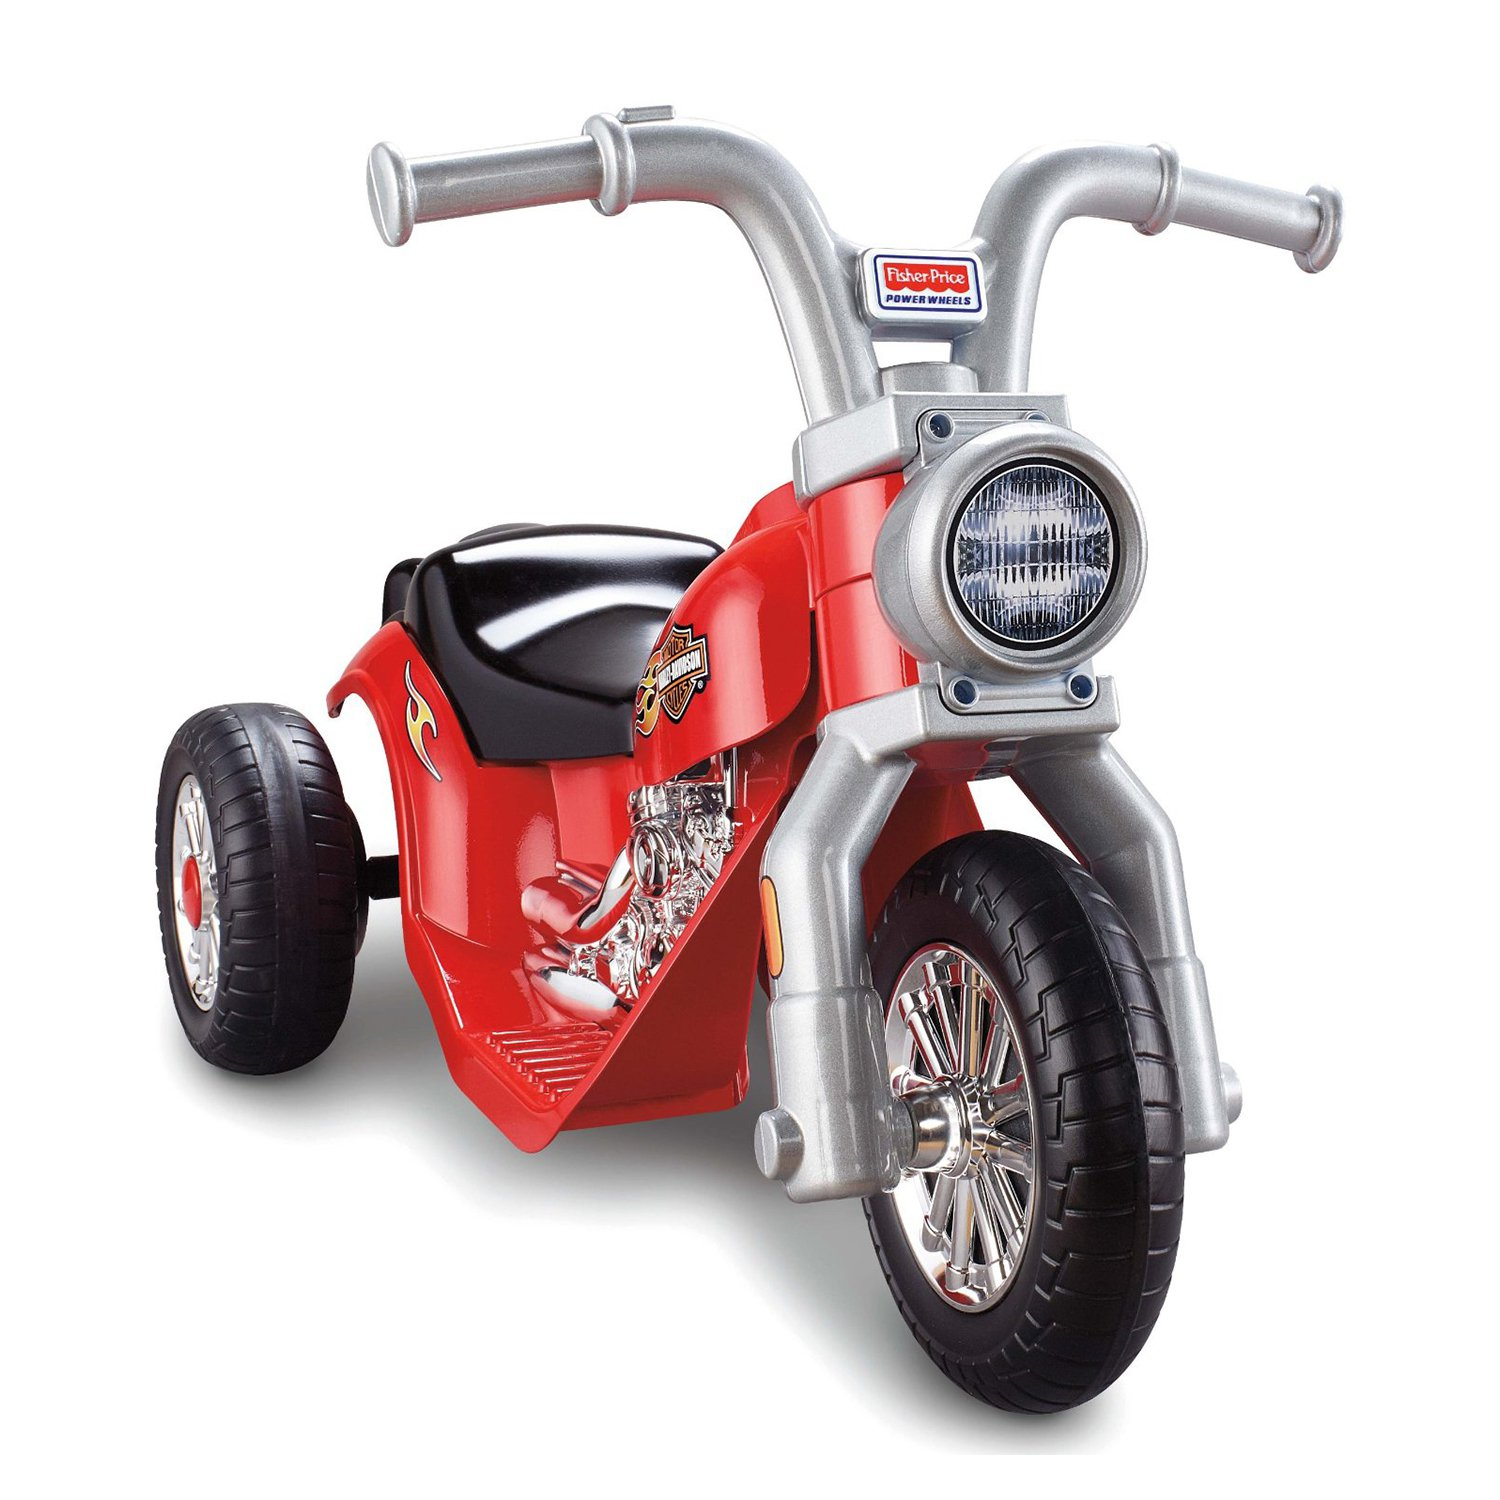 Power Wheels Harley Davidson Lil' Harley Motorcycle 6 Volt Electric Ride-On by Fisher-Price